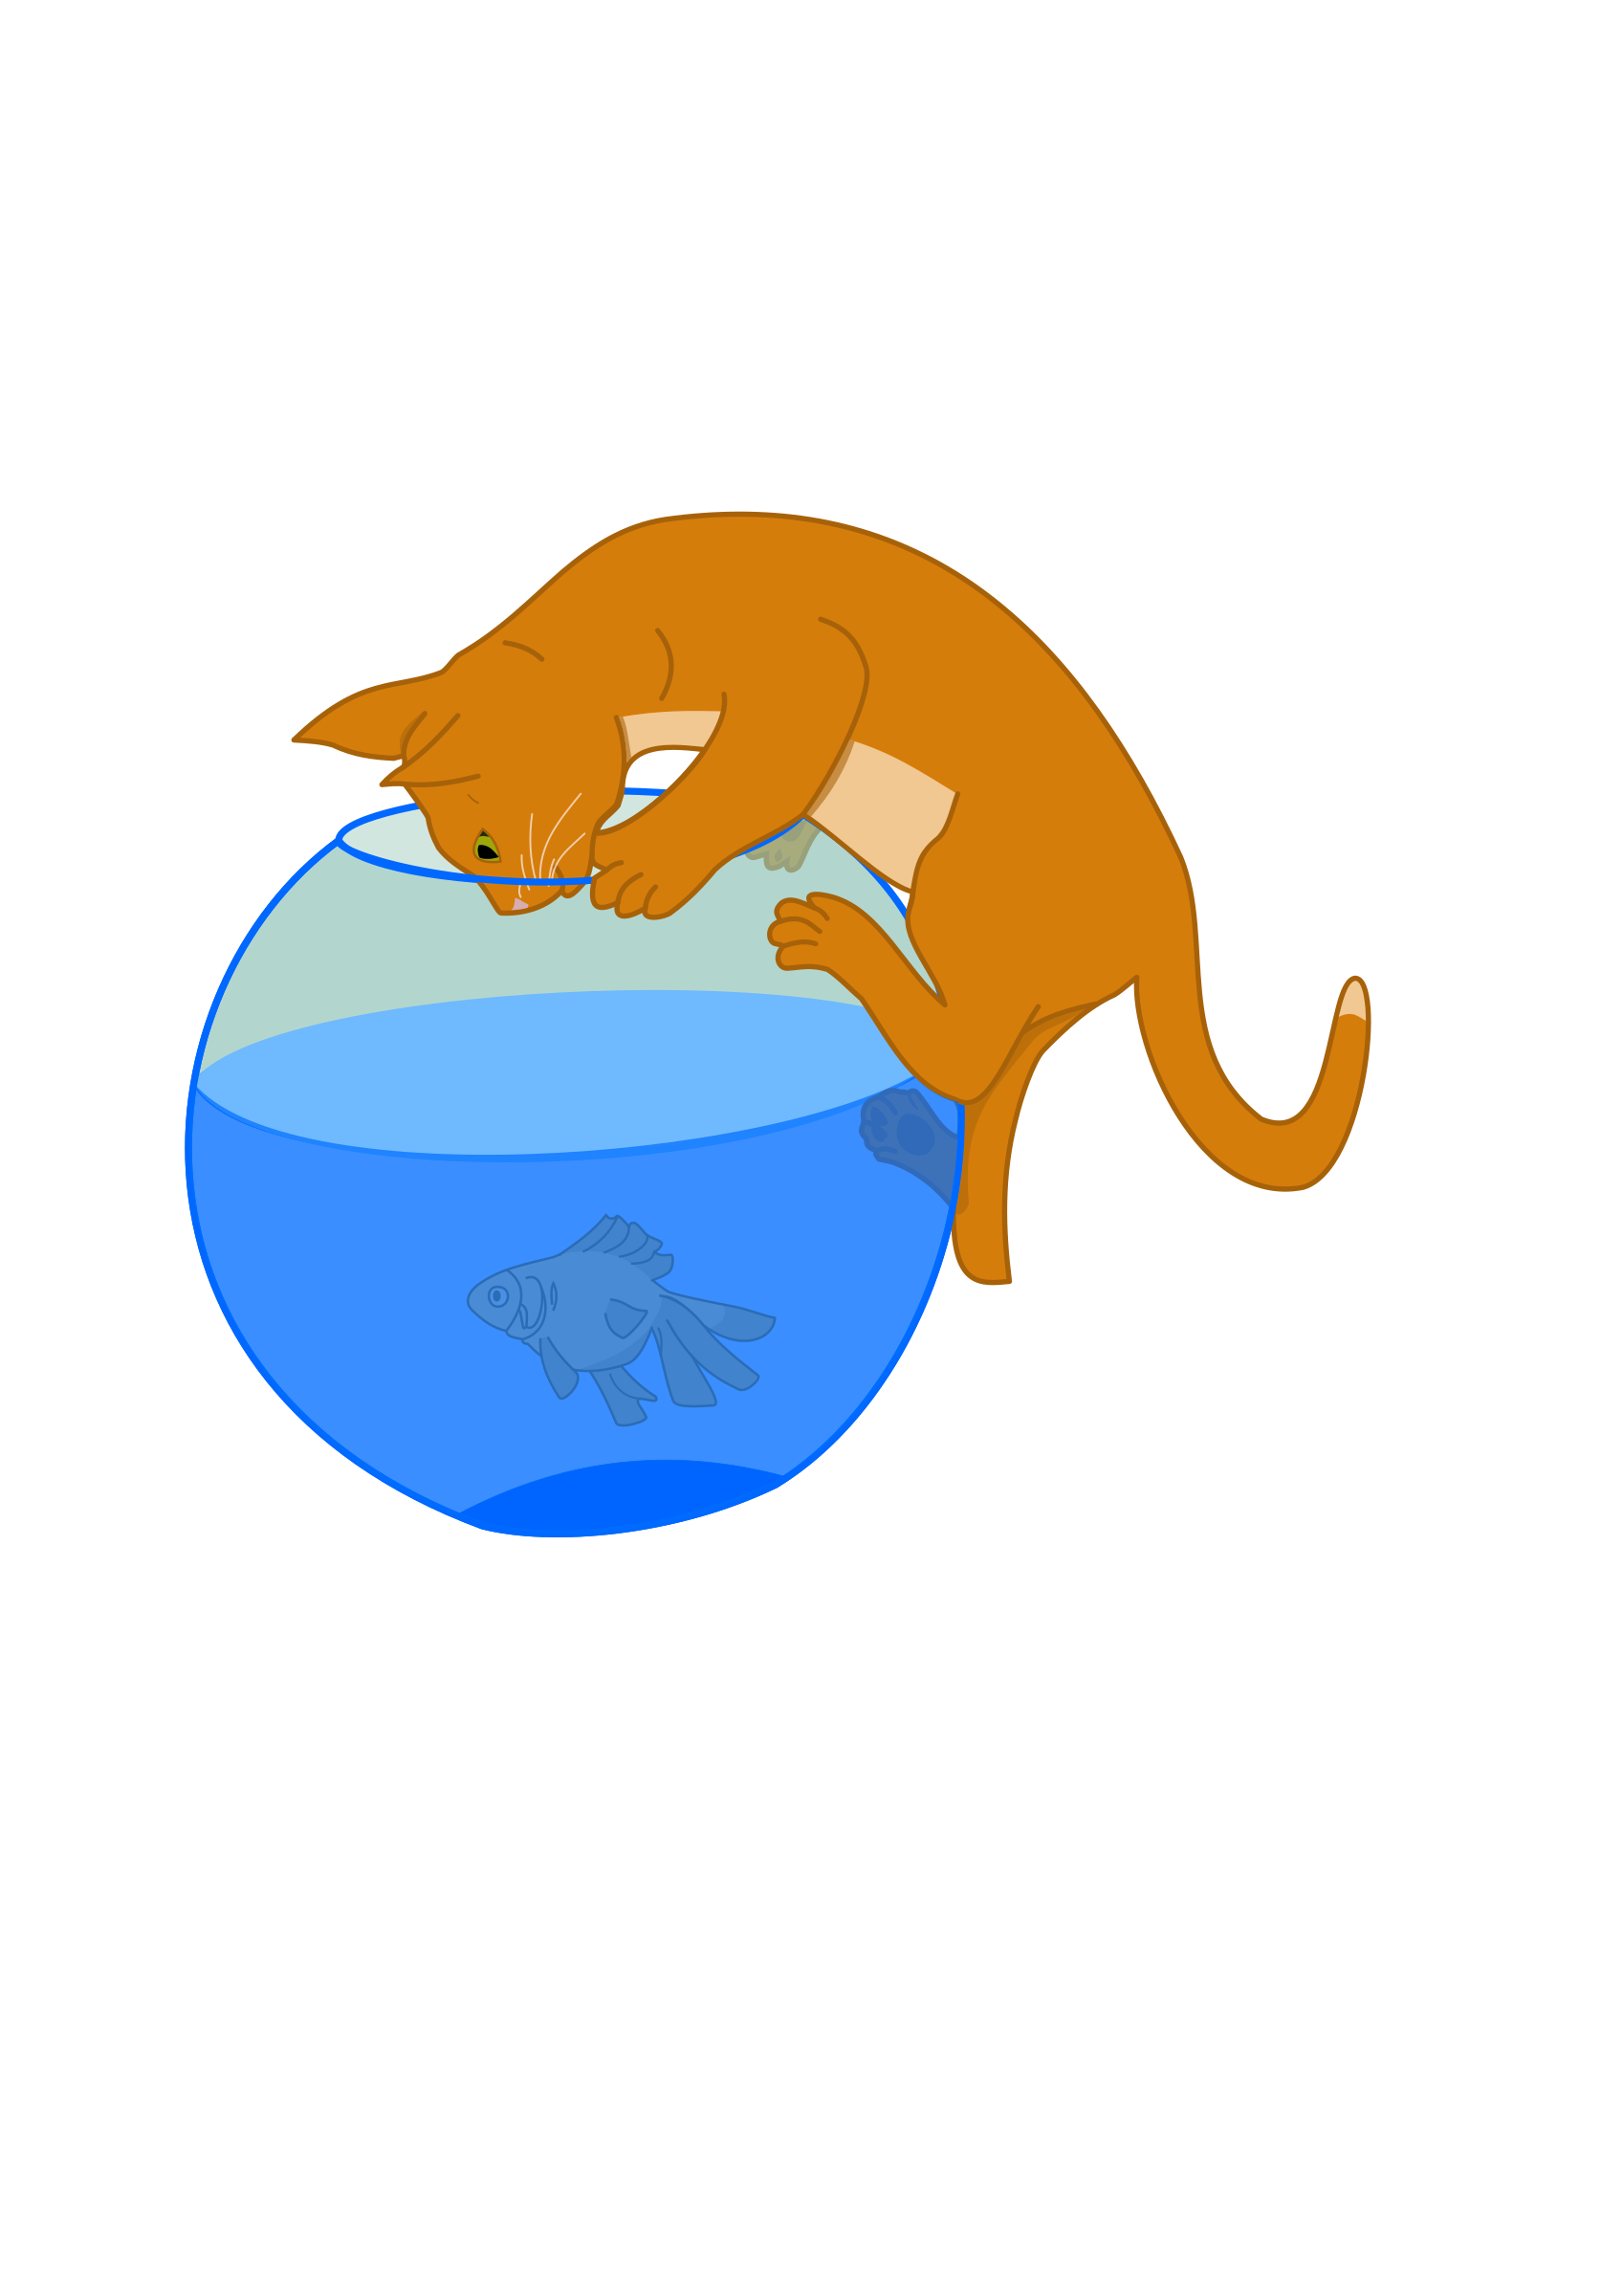 And fish big image. Kitten clipart cat toy